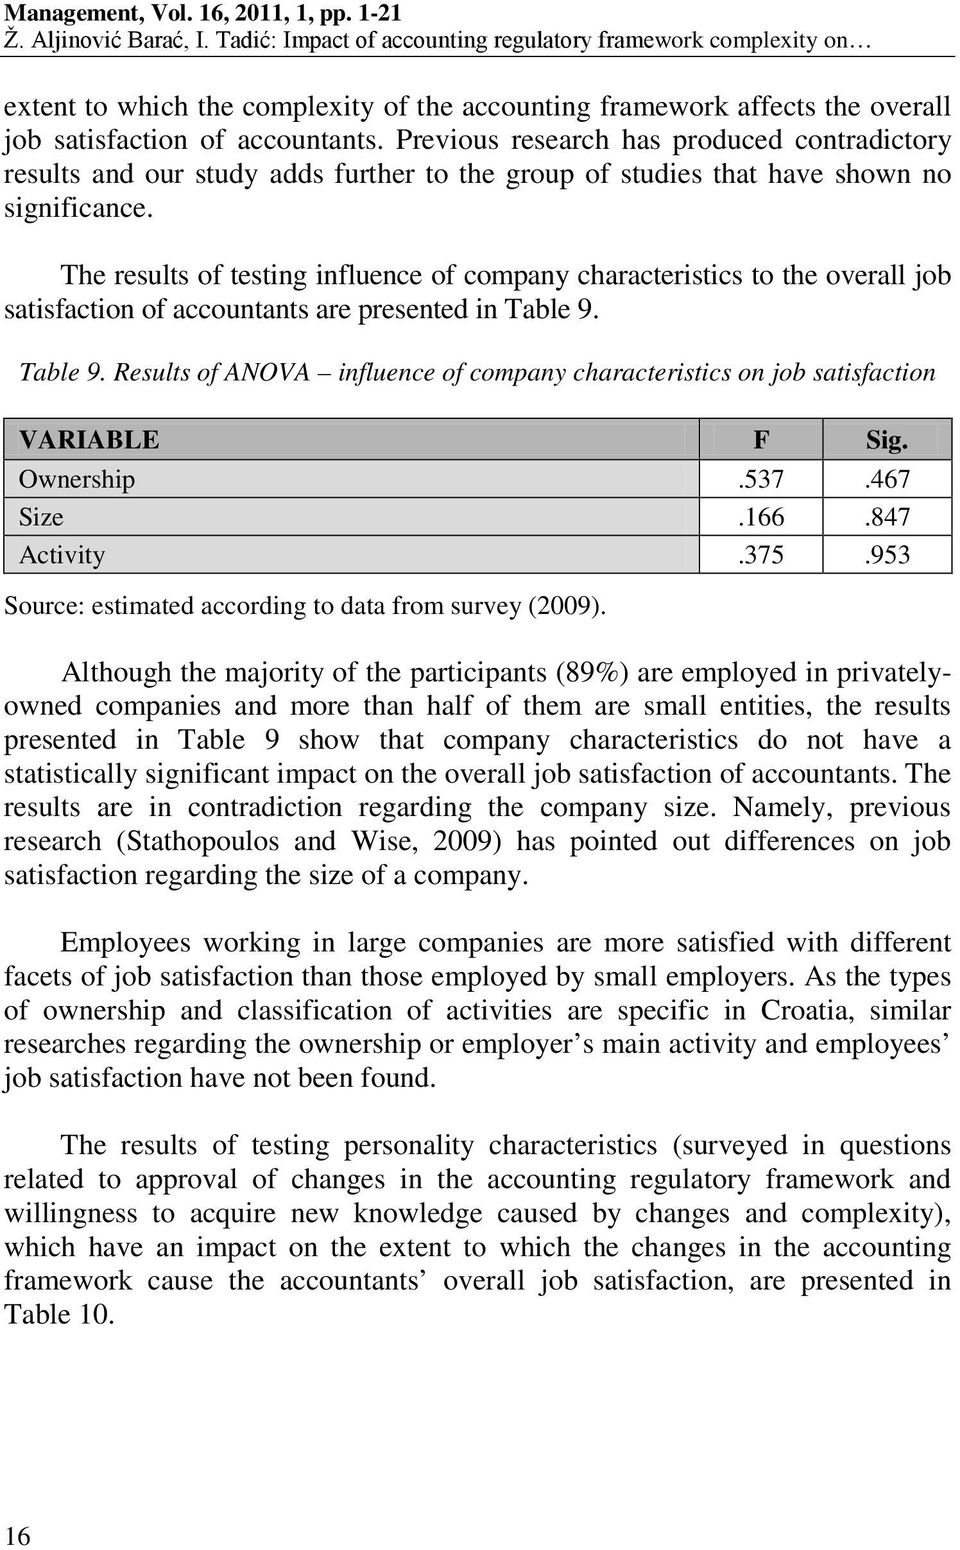 The results of testing influence of company characteristics to the overall job satisfaction of accountants are presented in Table 9.